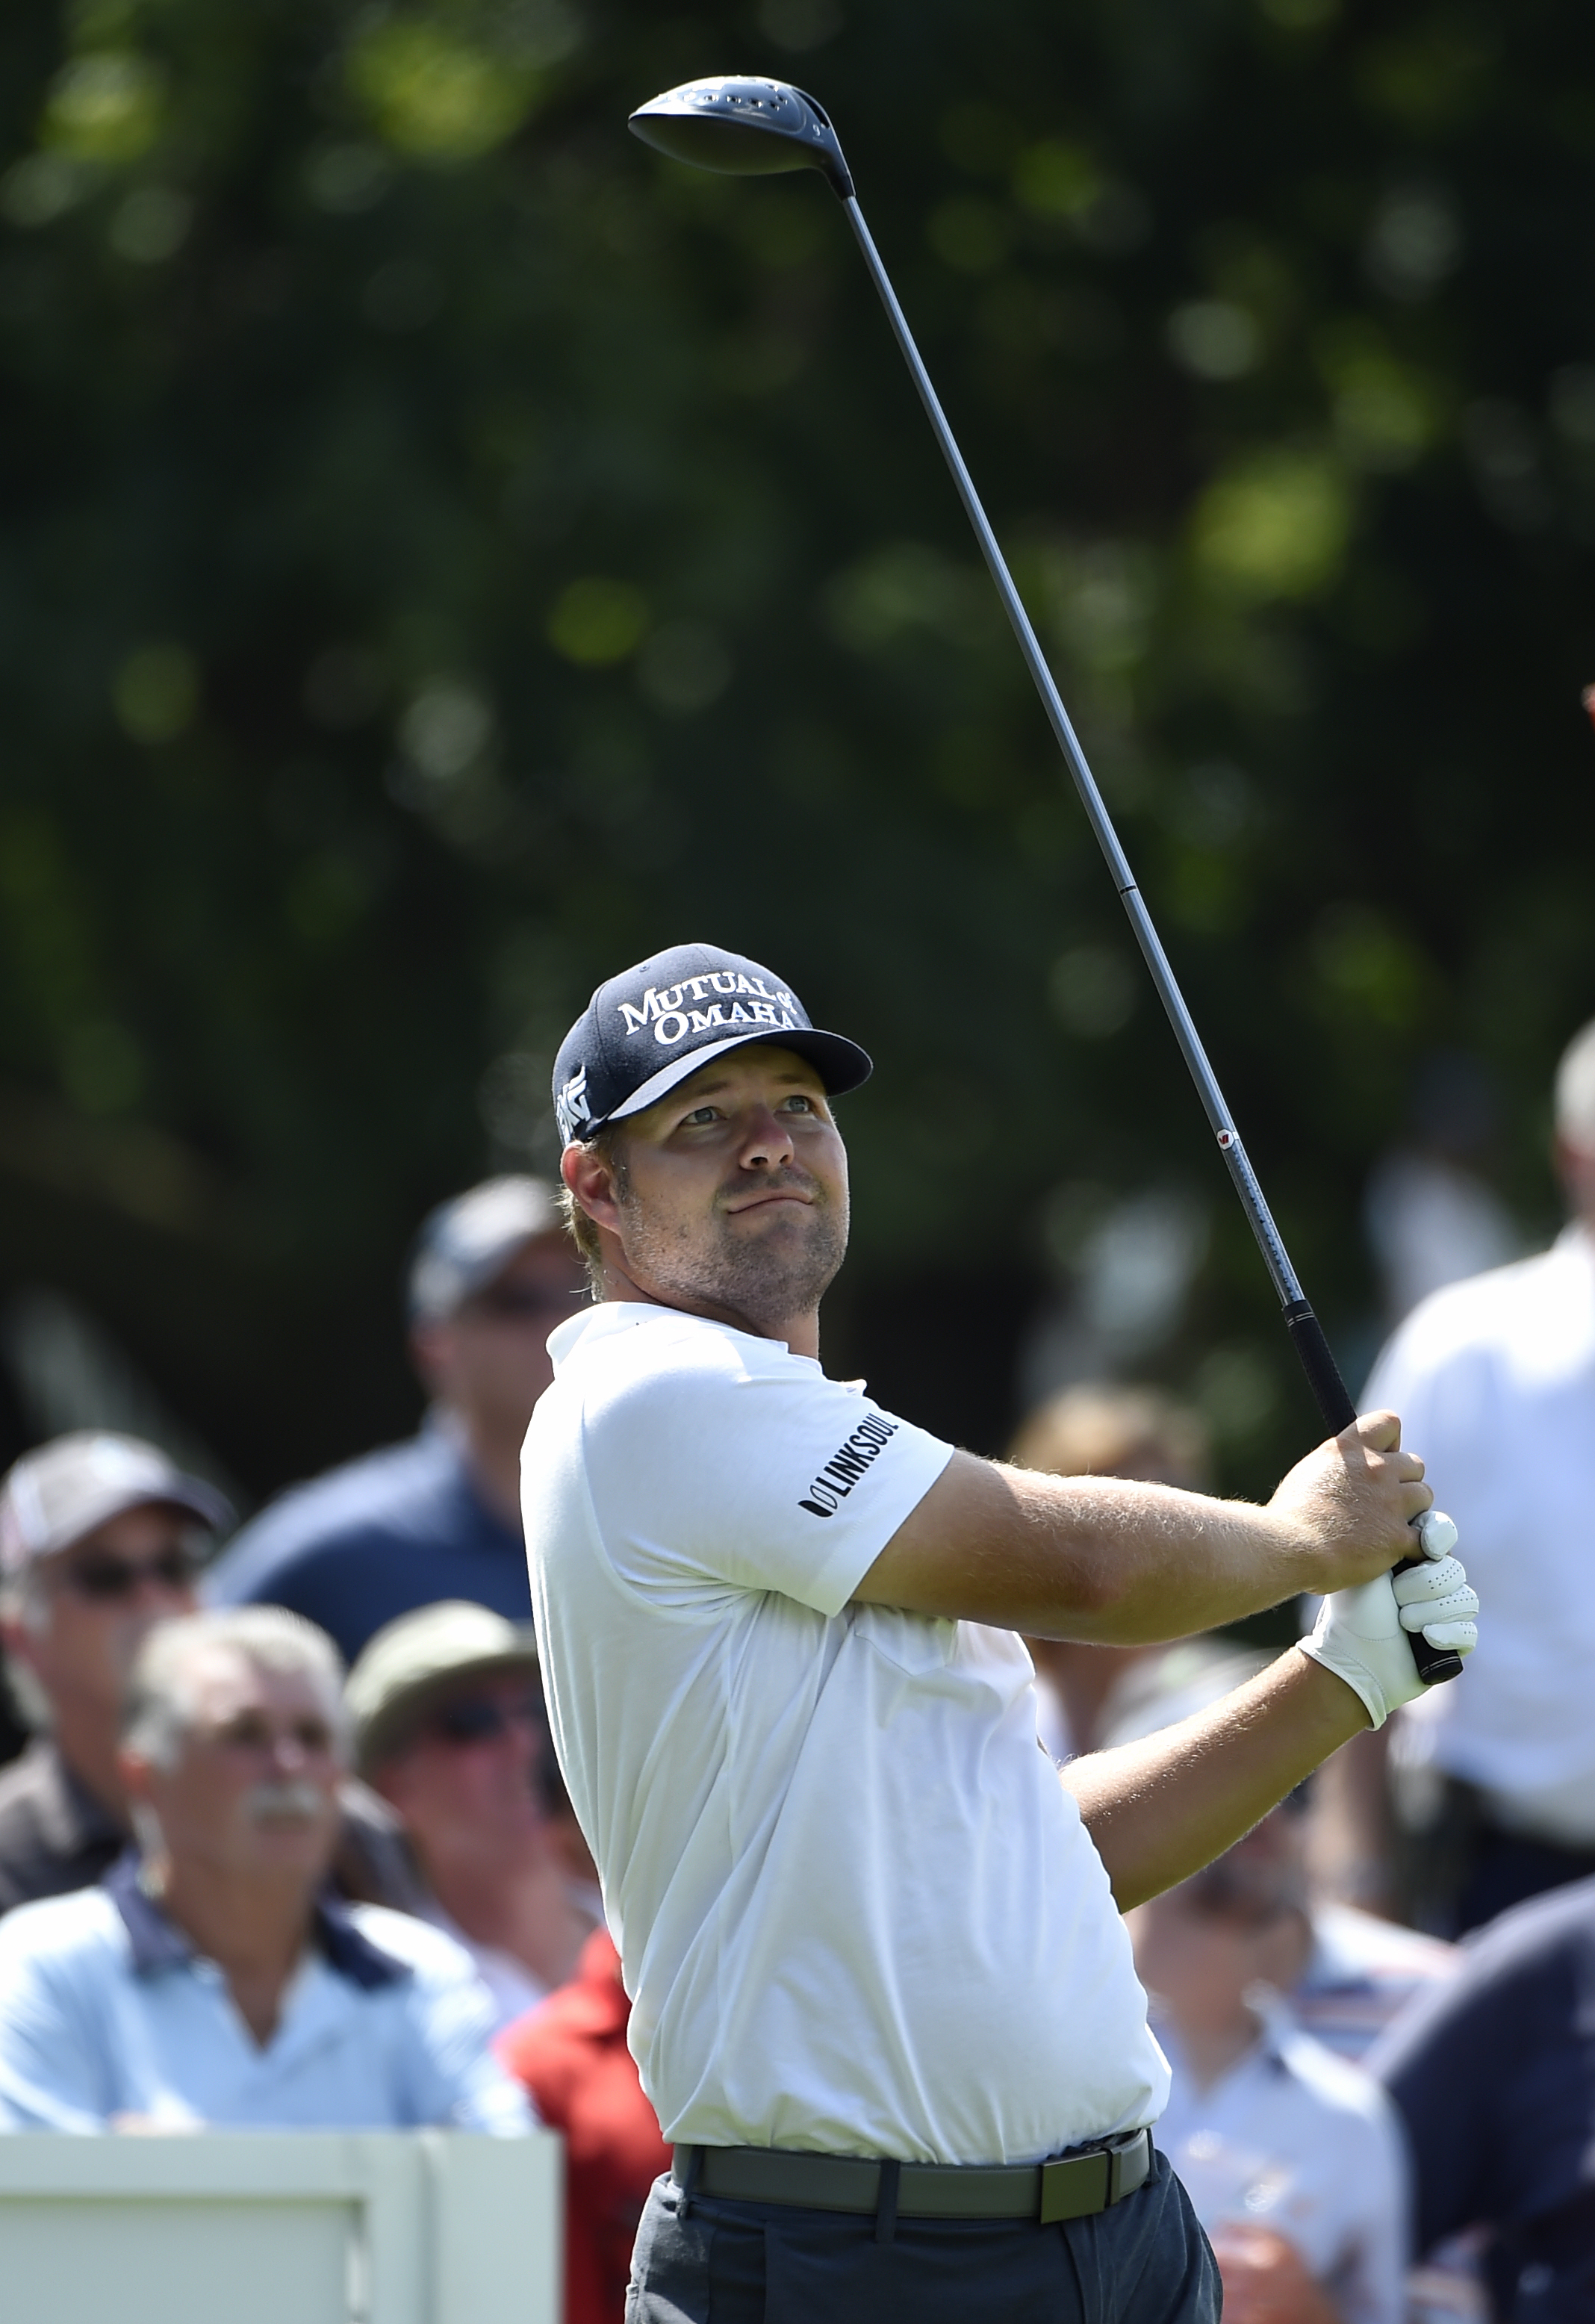 Ryan Moore watches his tee shot from the 15th hole during the second round of The Barclays golf tournament in Farmingdale, N.Y., Friday, Aug. 26, 2016, (AP Photo/Kathy Kmonicek)